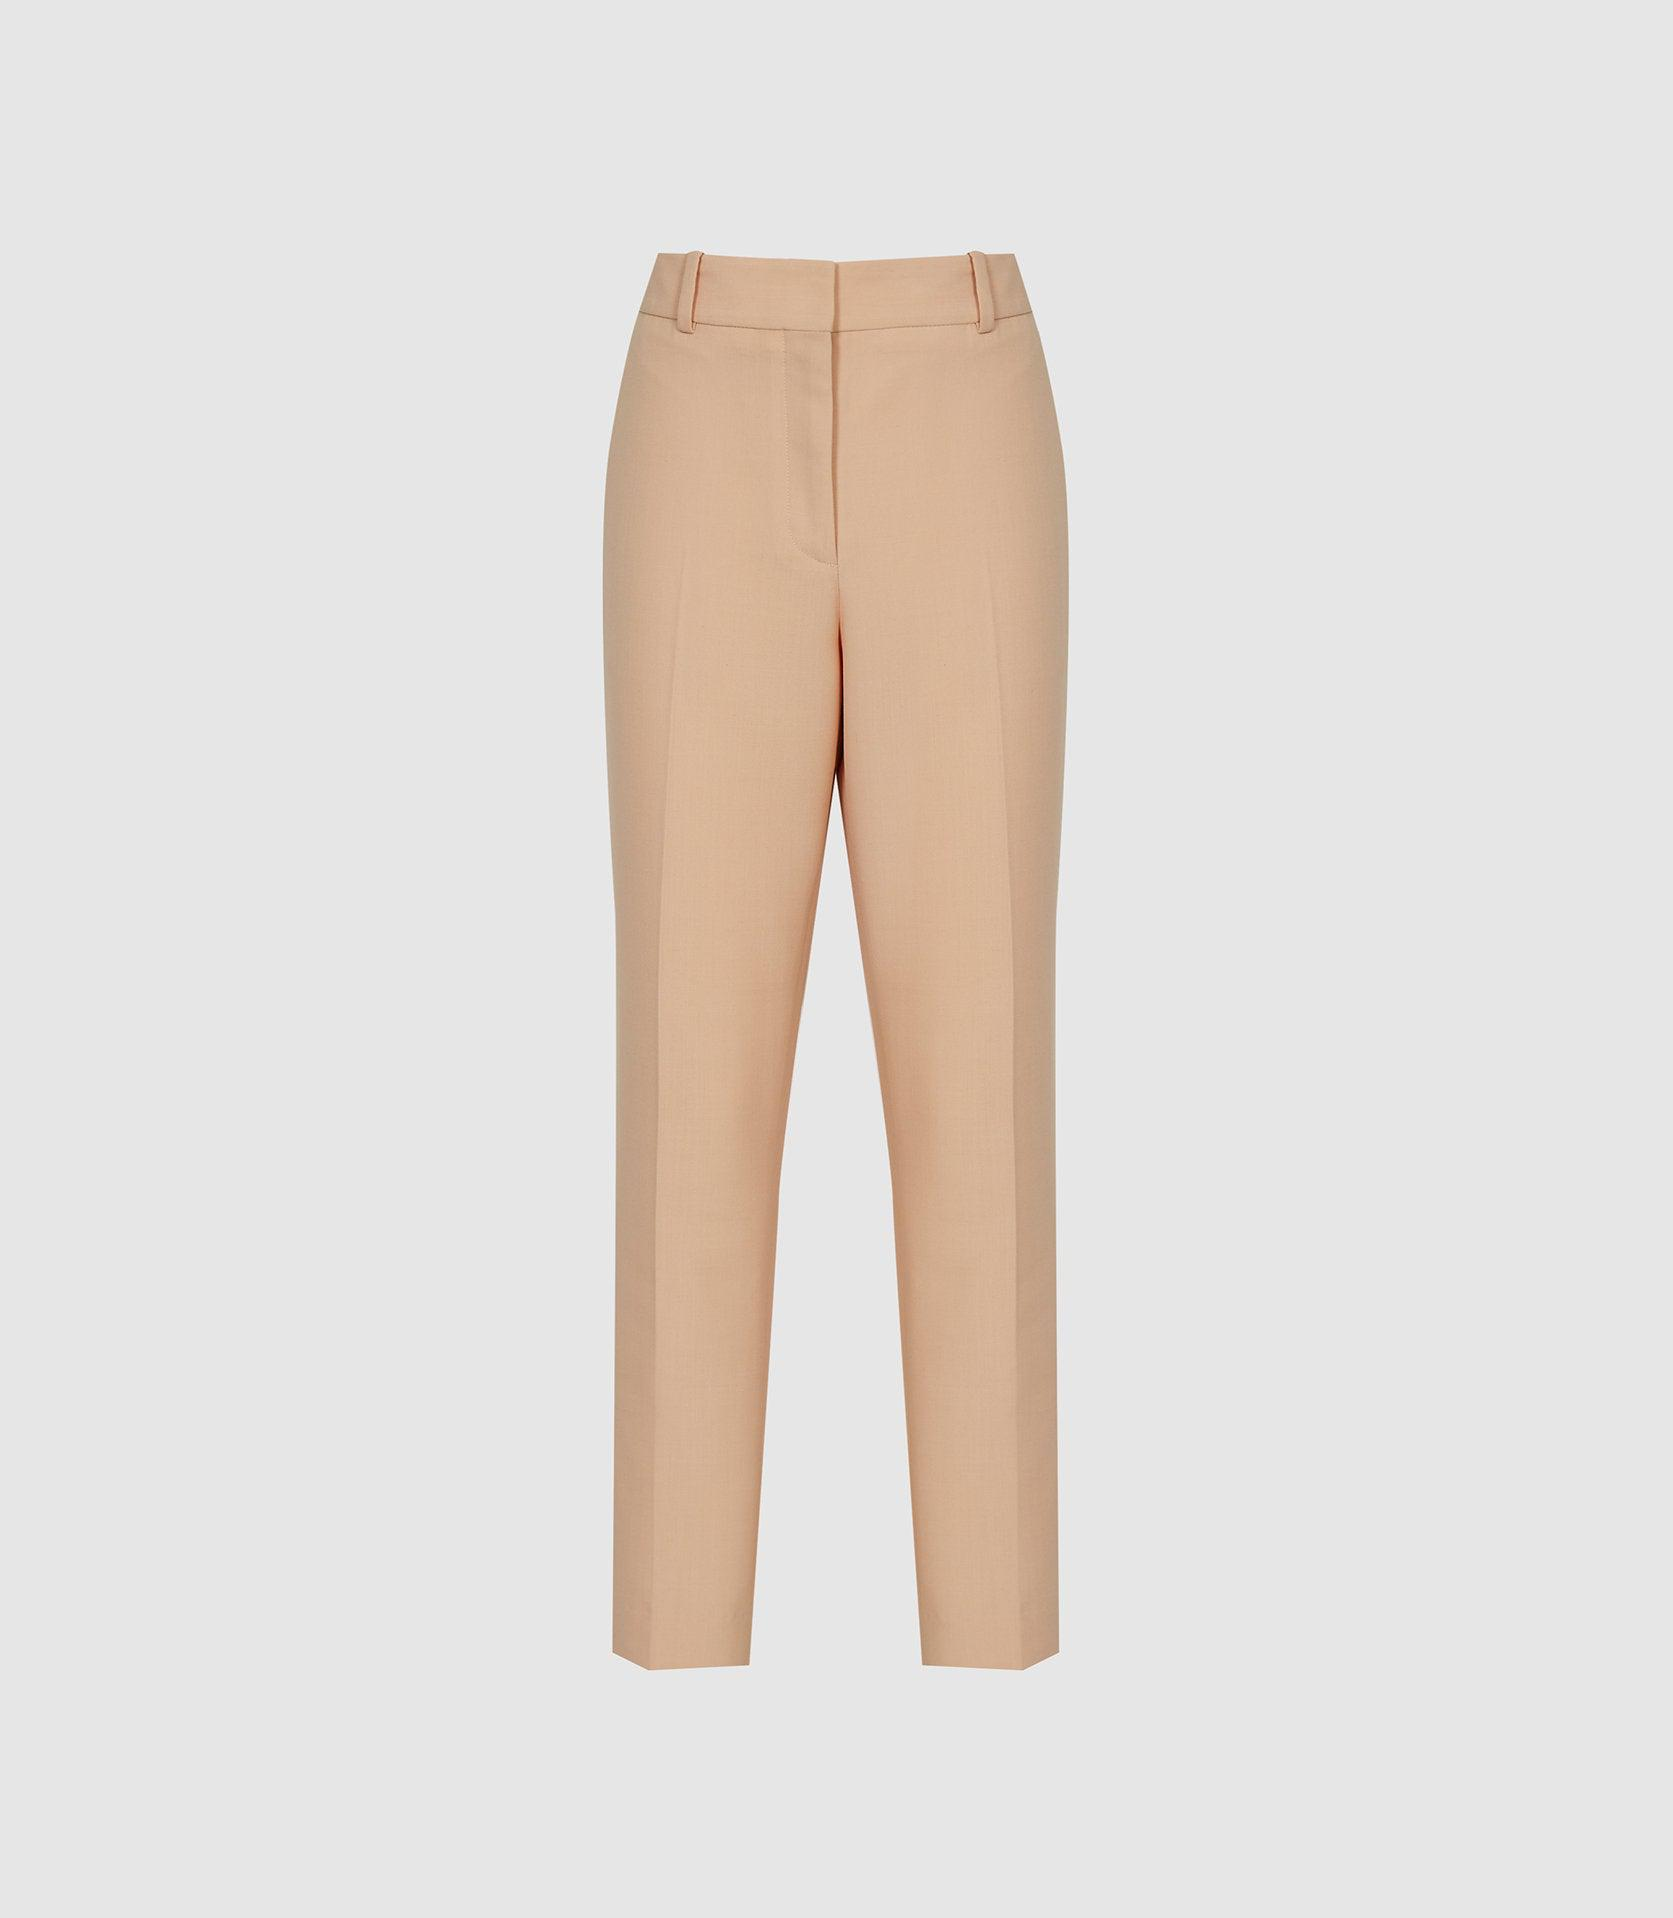 EVELYN - WOOL LINEN BLEND SLIM FIT TROUSERS 5